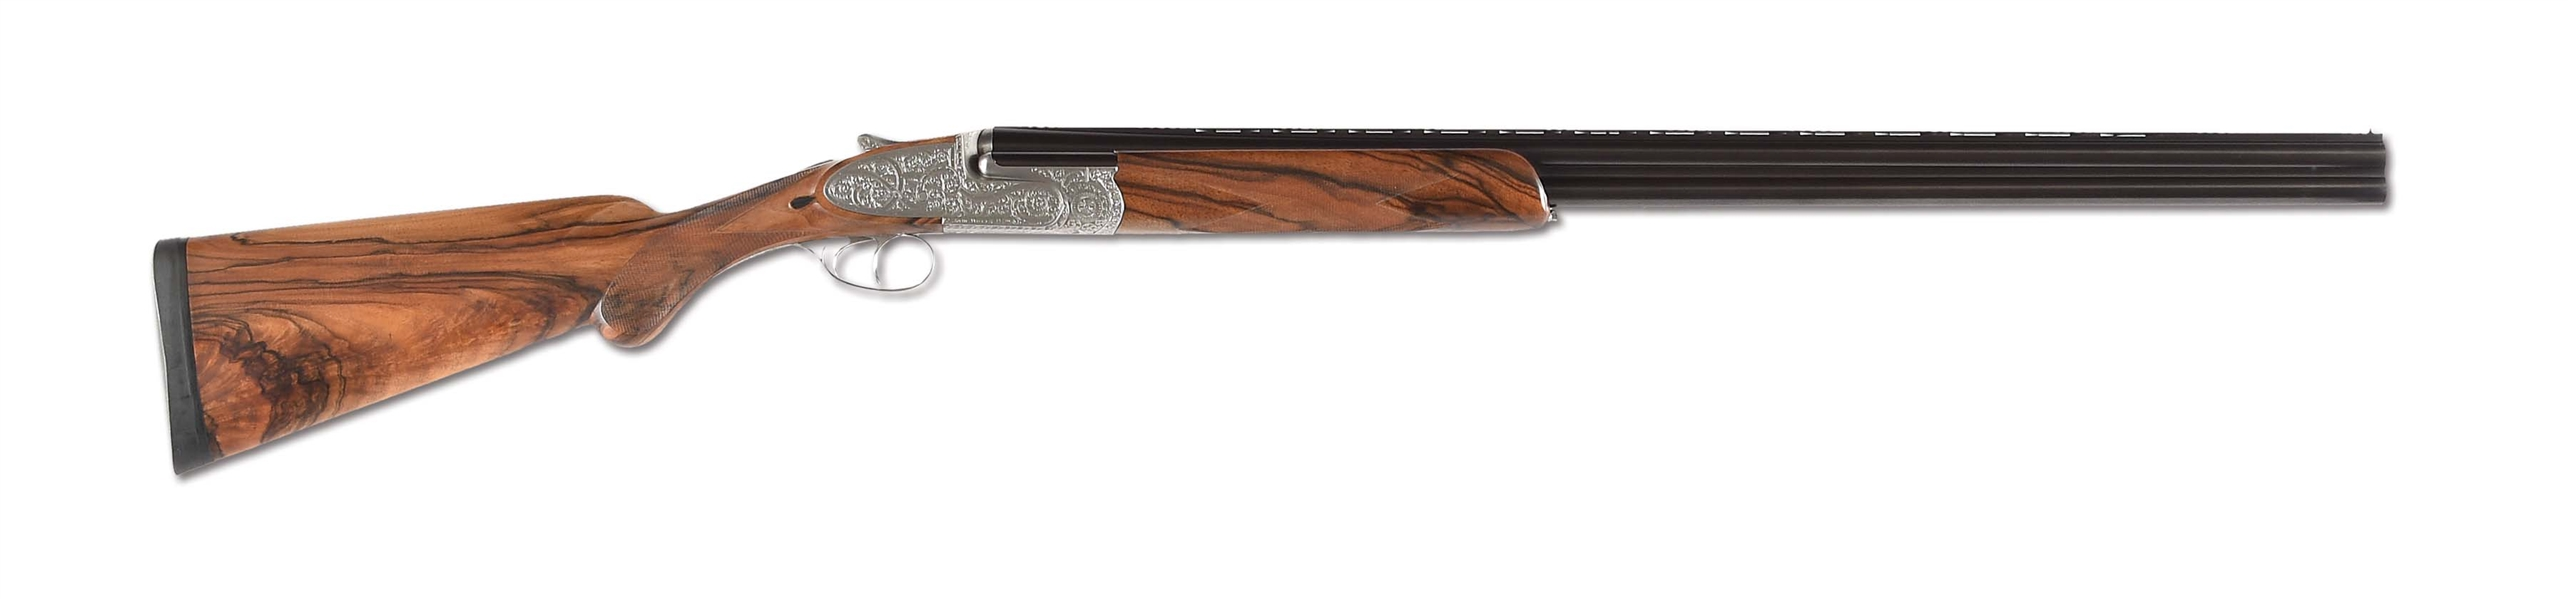 "(M) INNOVATIVE 20 GAUGE JOHN WILKES LONDON ""SPECIAL SERIES"" OVER-UNDER SIDELOCK EJECTOR SHOTGUN ENGRAVED BY GARY GRIFFITHS WITH CASE."